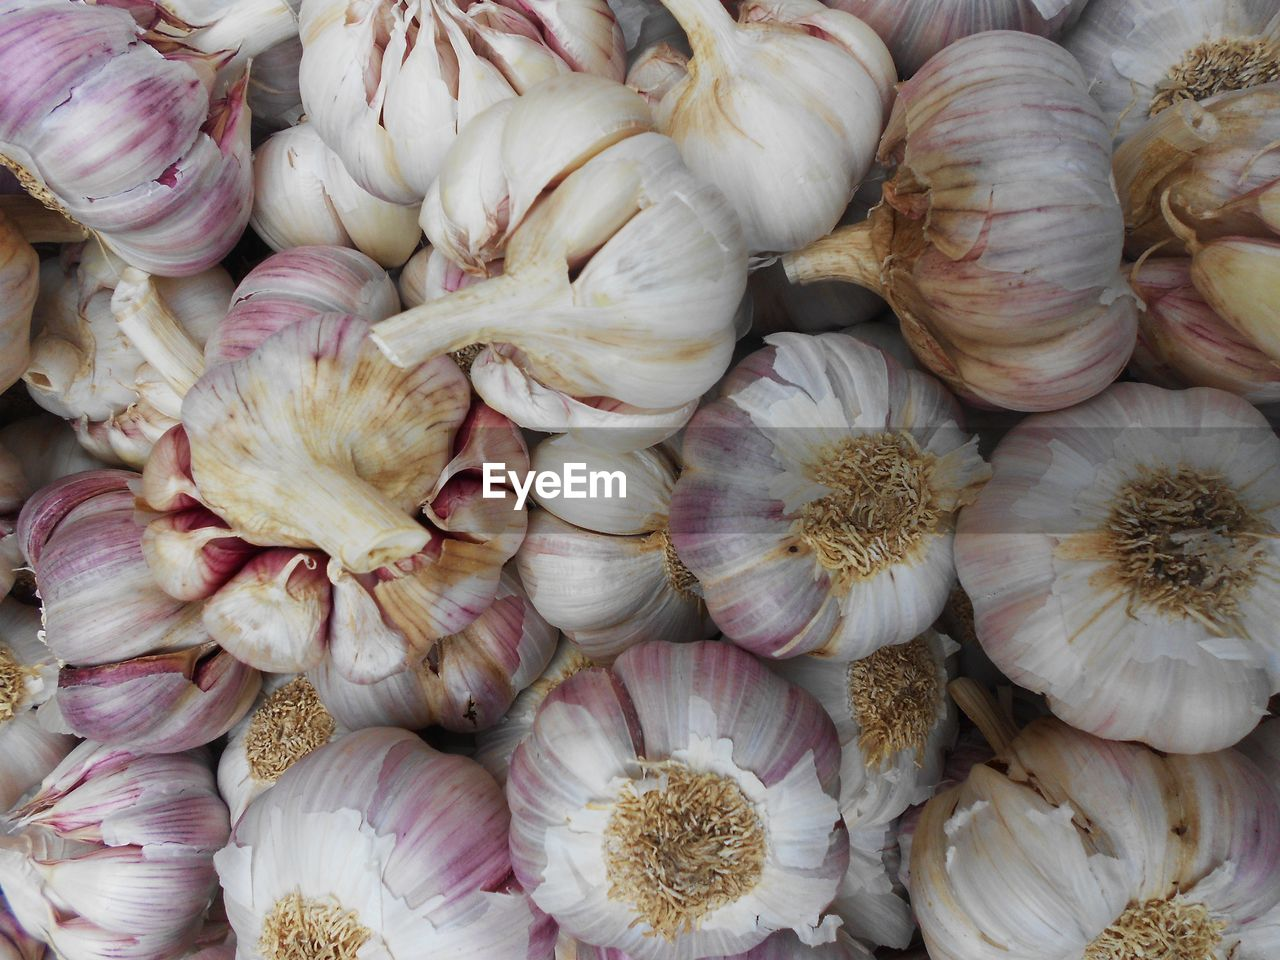 food and drink, freshness, food, full frame, backgrounds, large group of objects, market, wellbeing, garlic, garlic bulb, for sale, still life, ingredient, no people, retail, healthy eating, vegetable, spice, close-up, raw food, retail display, consumerism, garlic clove